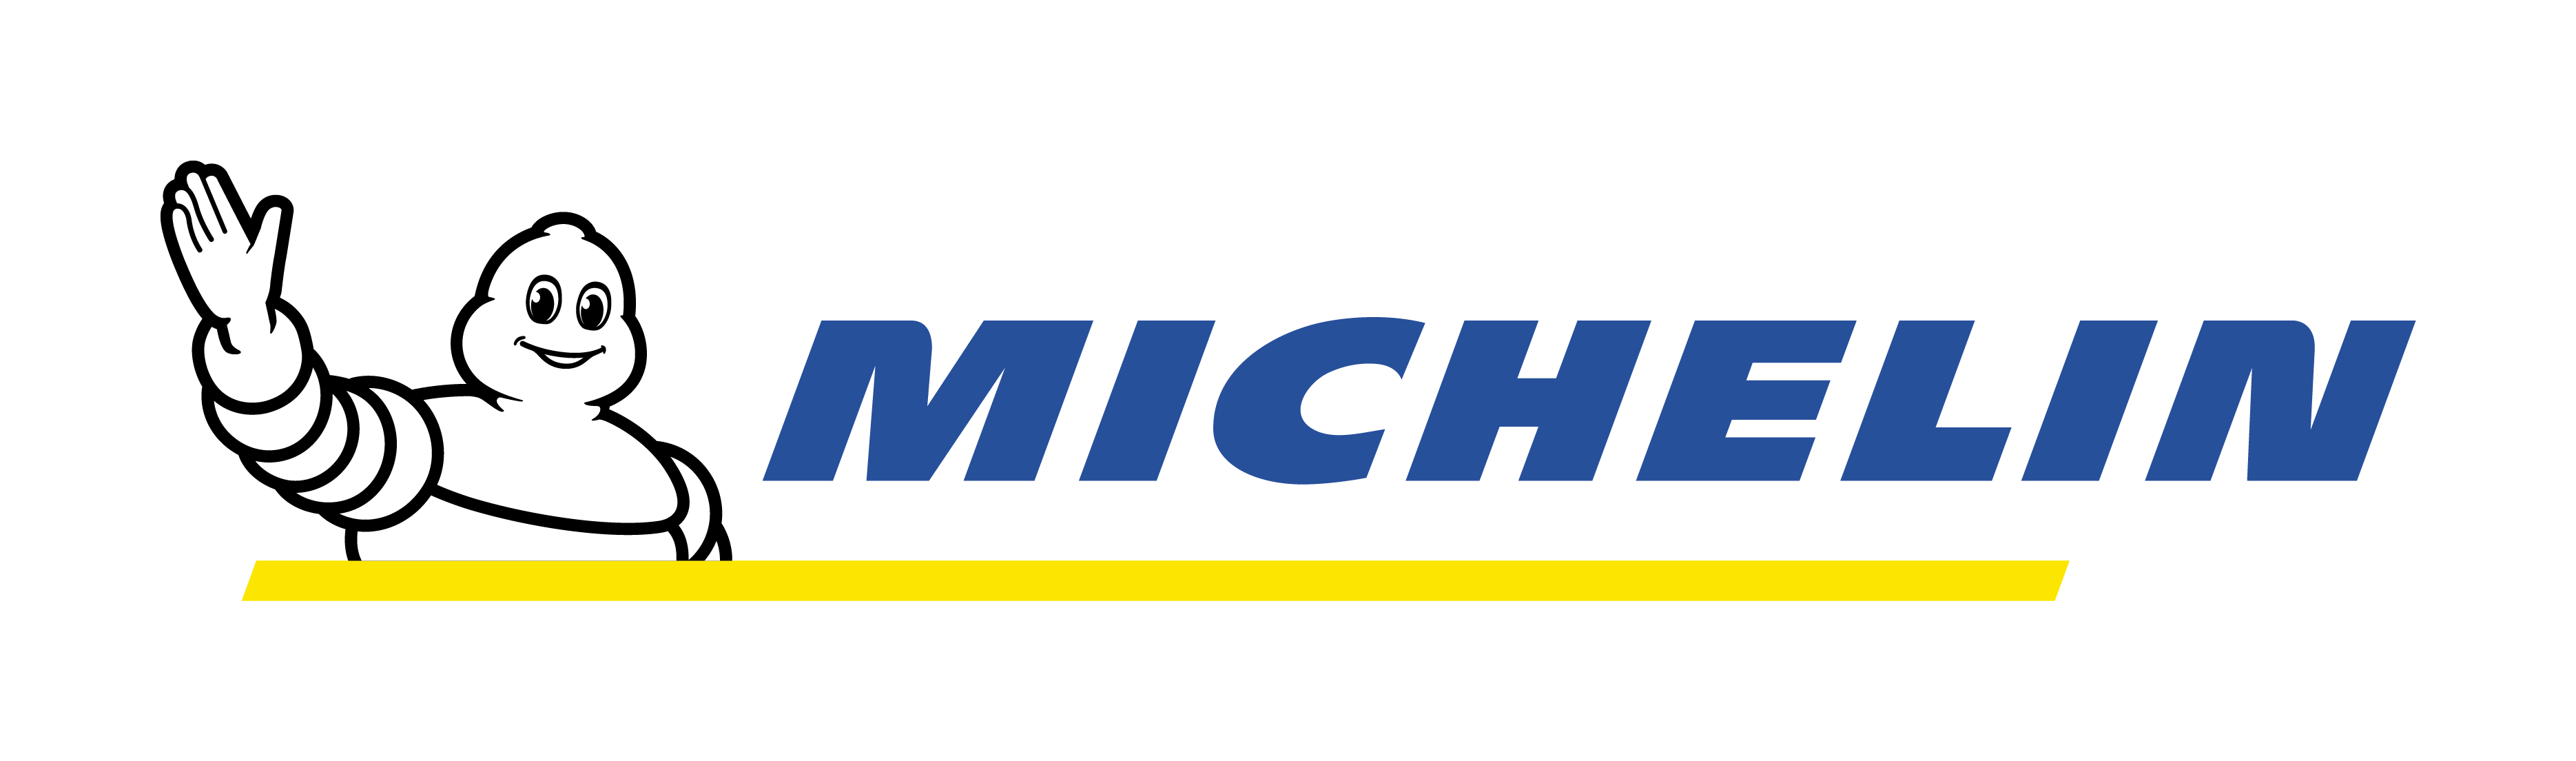 India Car Logos >> Michelin Tires Logo PNG Transparent Michelin Tires Logo.PNG Images. | PlusPNG